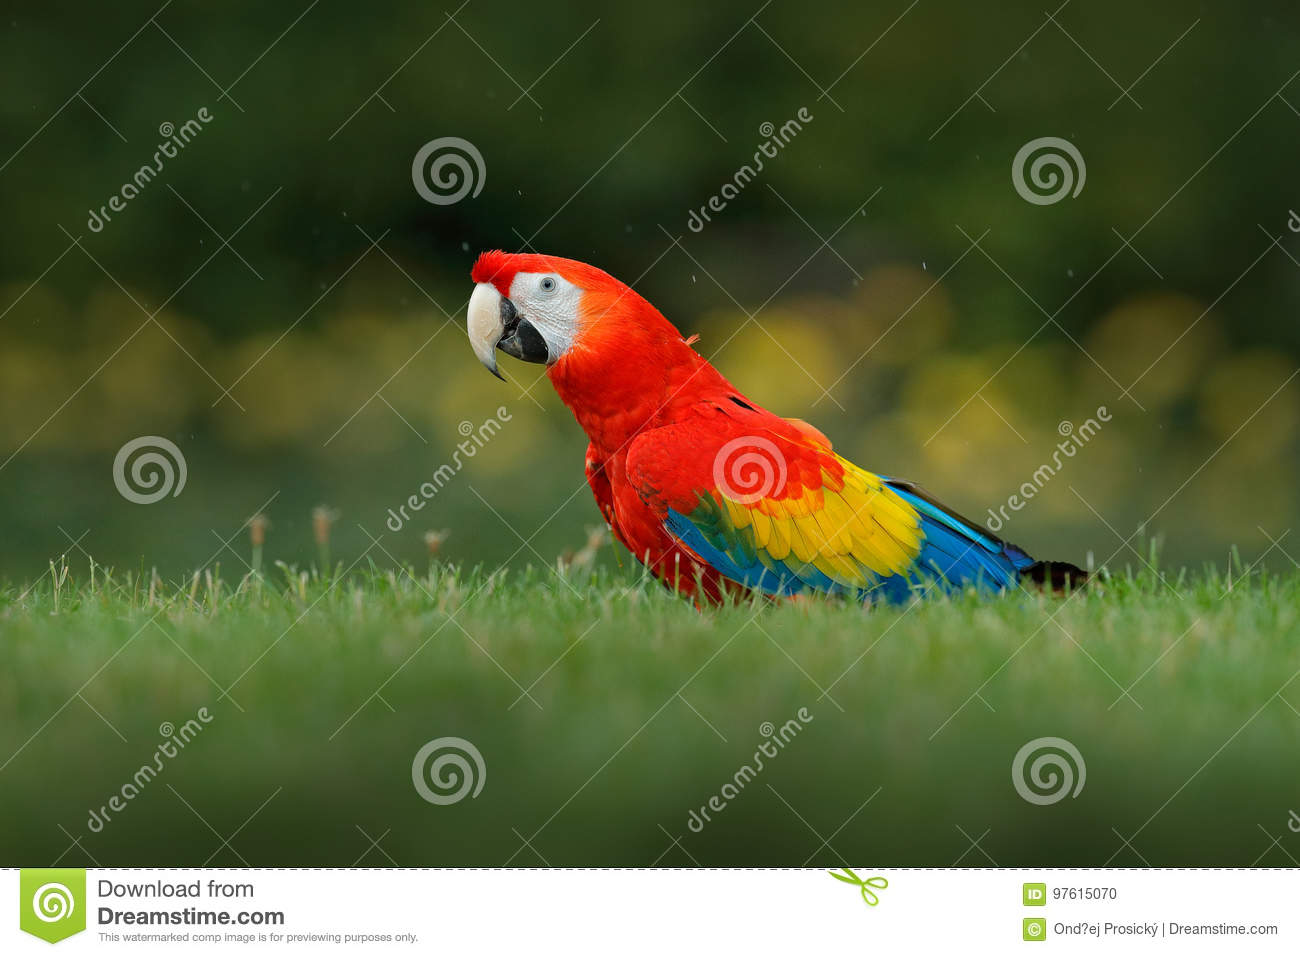 Parrot in grass. Wildlife in Costa Rica. Parrot Scarlet Macaw, Ara macao, in green tropical forest, Panama. Wildlife scene from tr